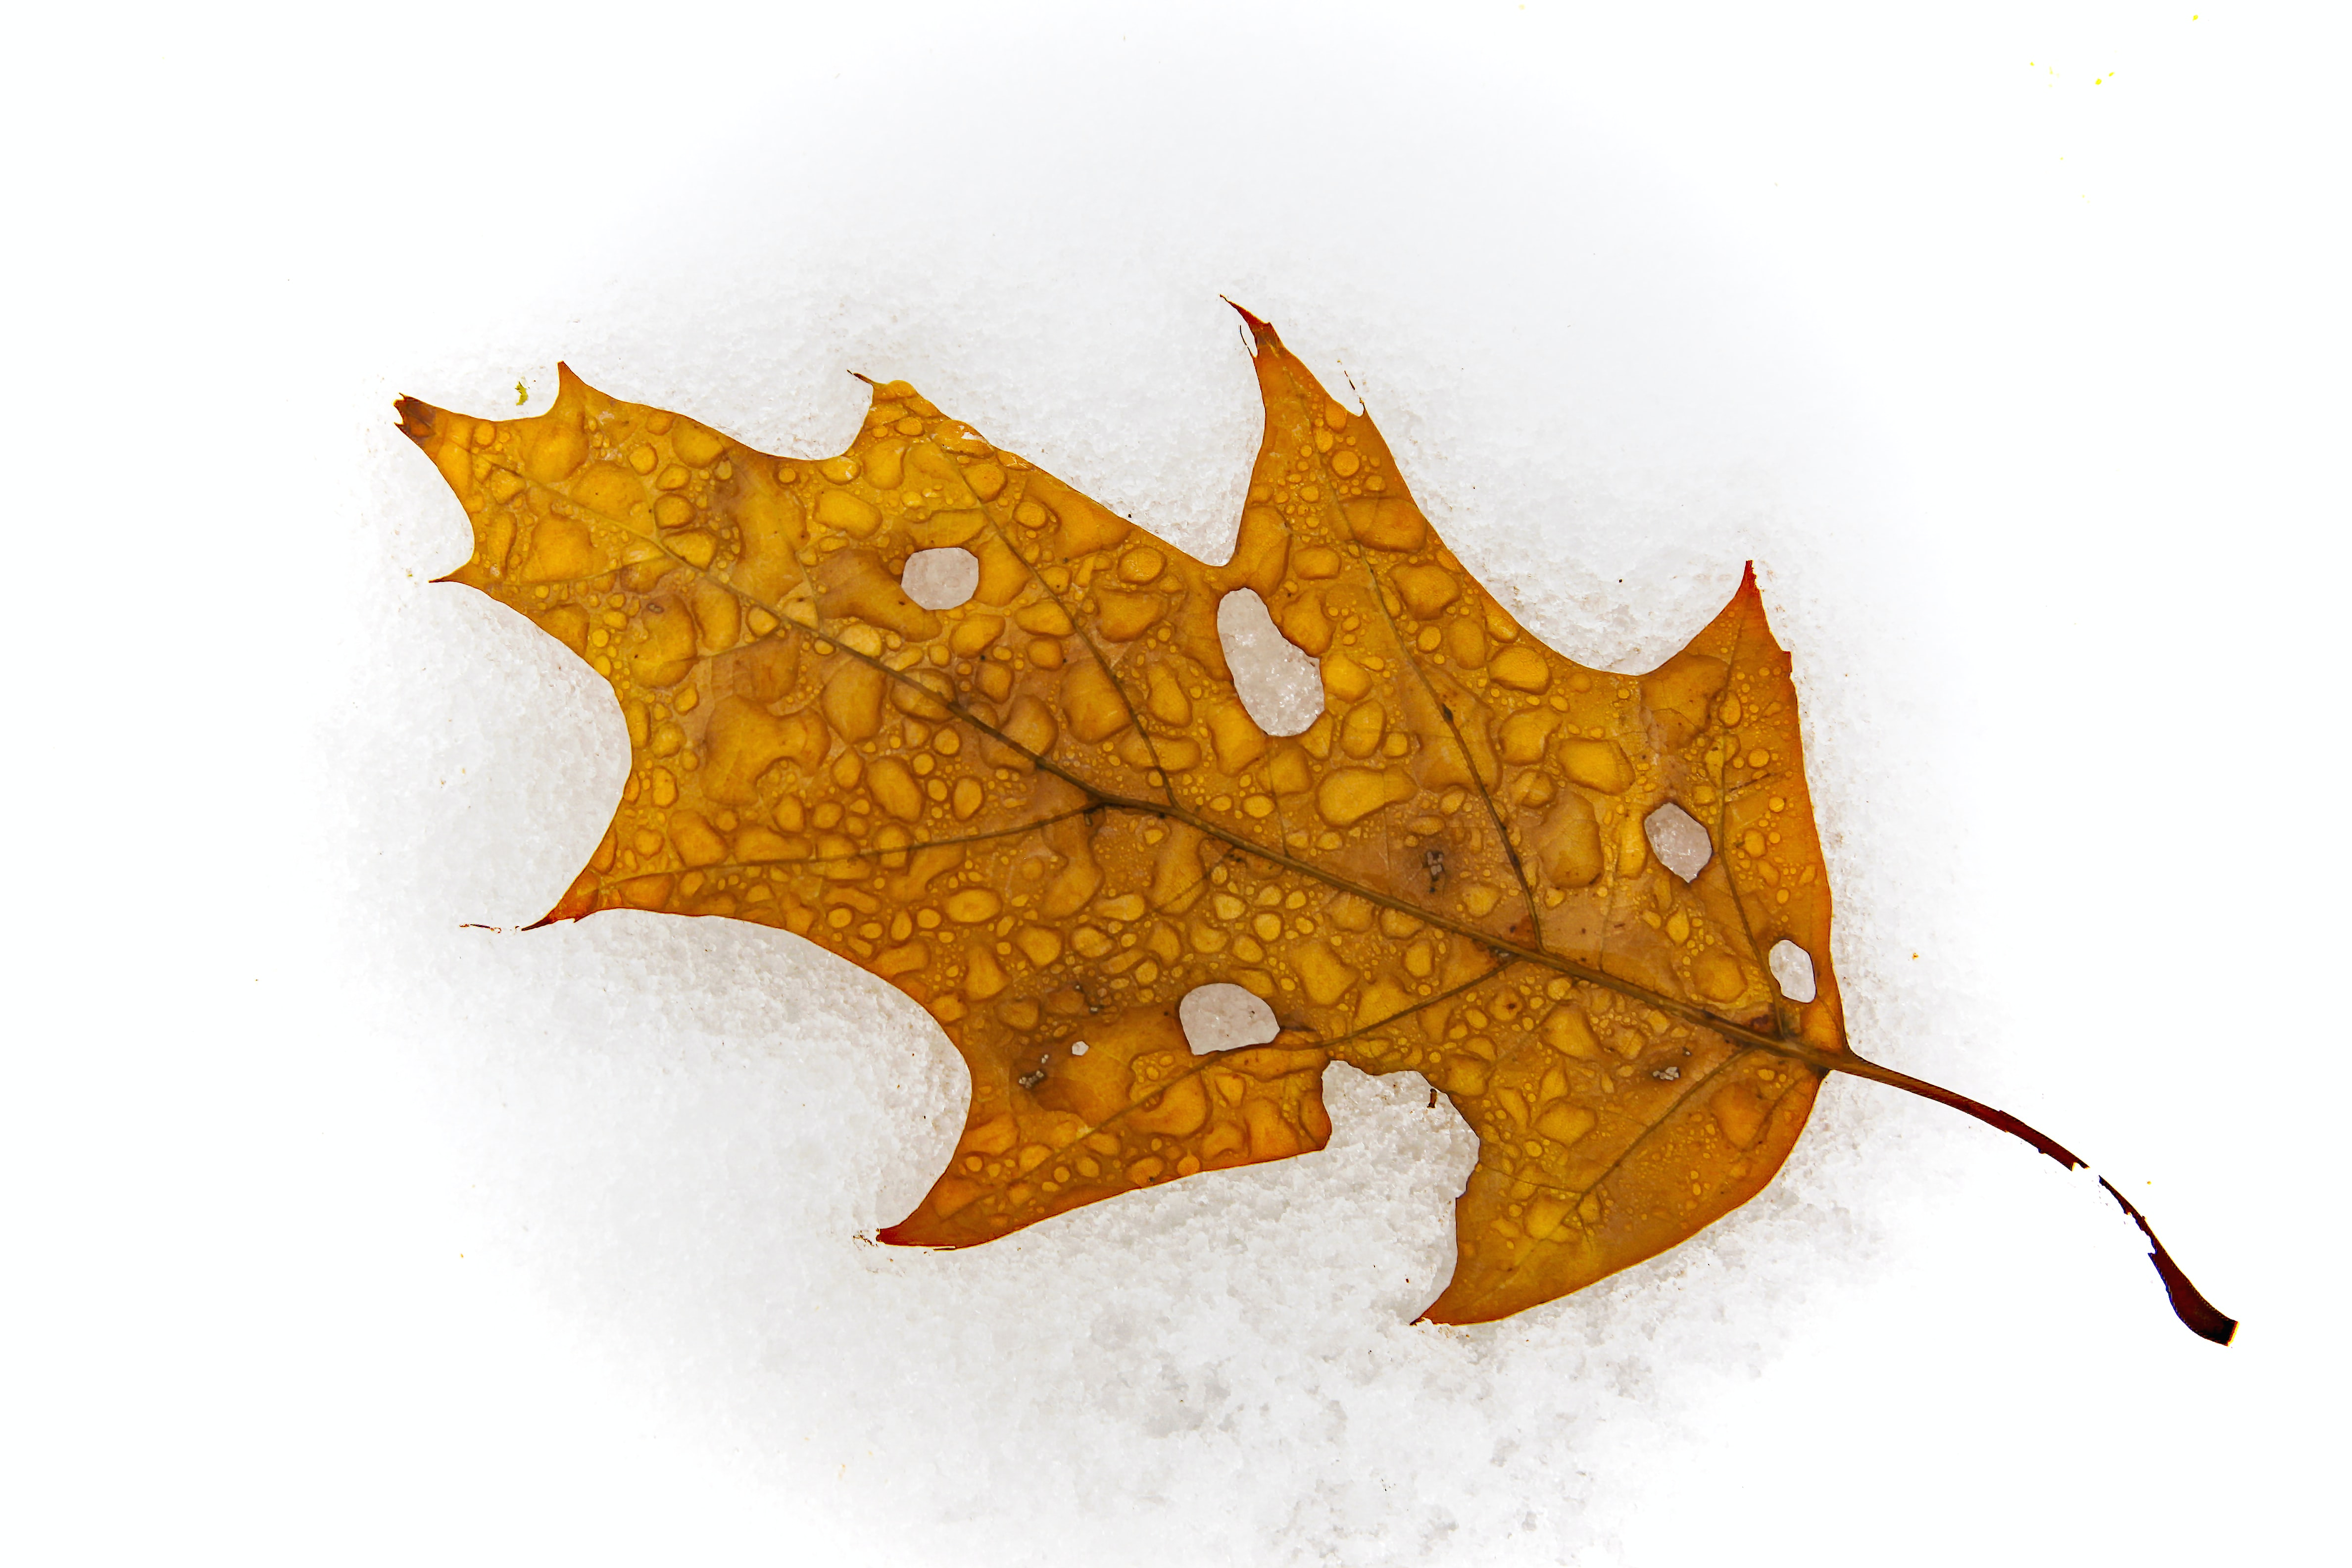 top view of leaf with water droplets